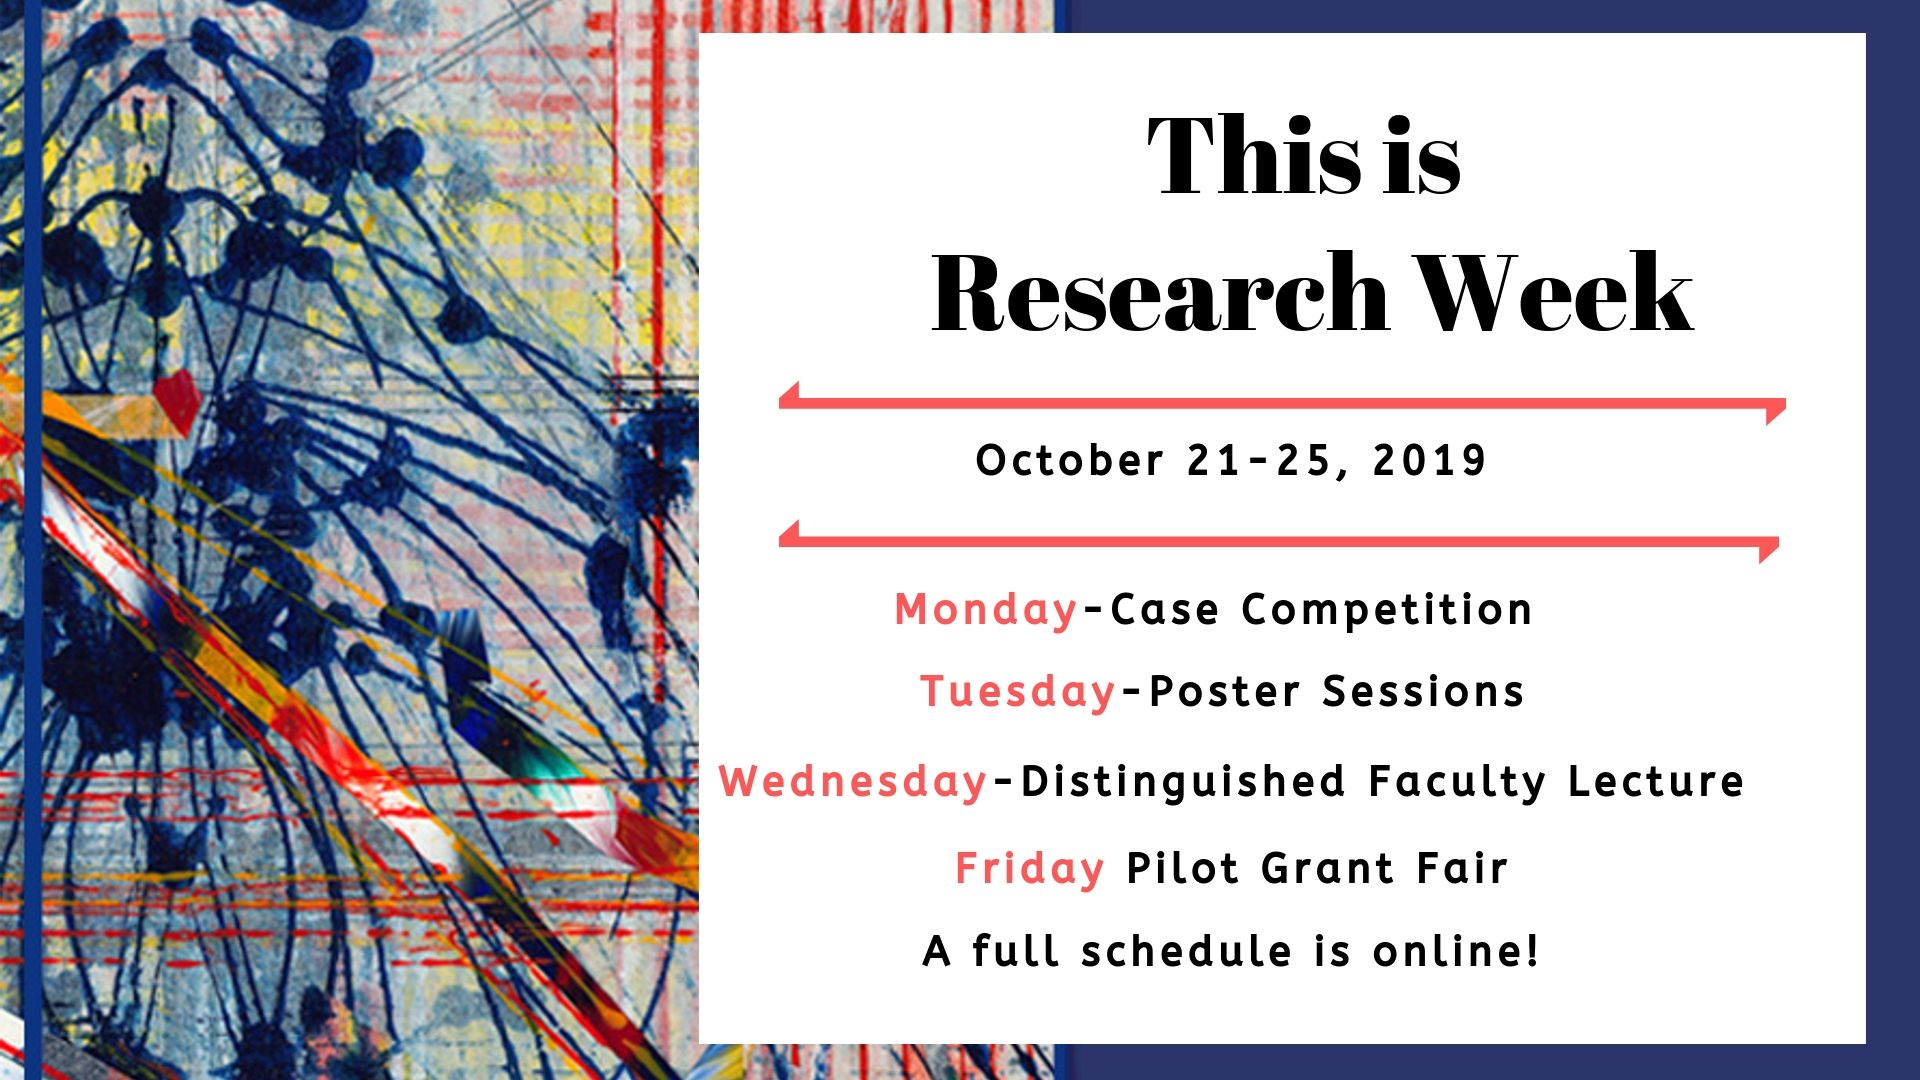 Save the Date for Research Week: Oct 21-25